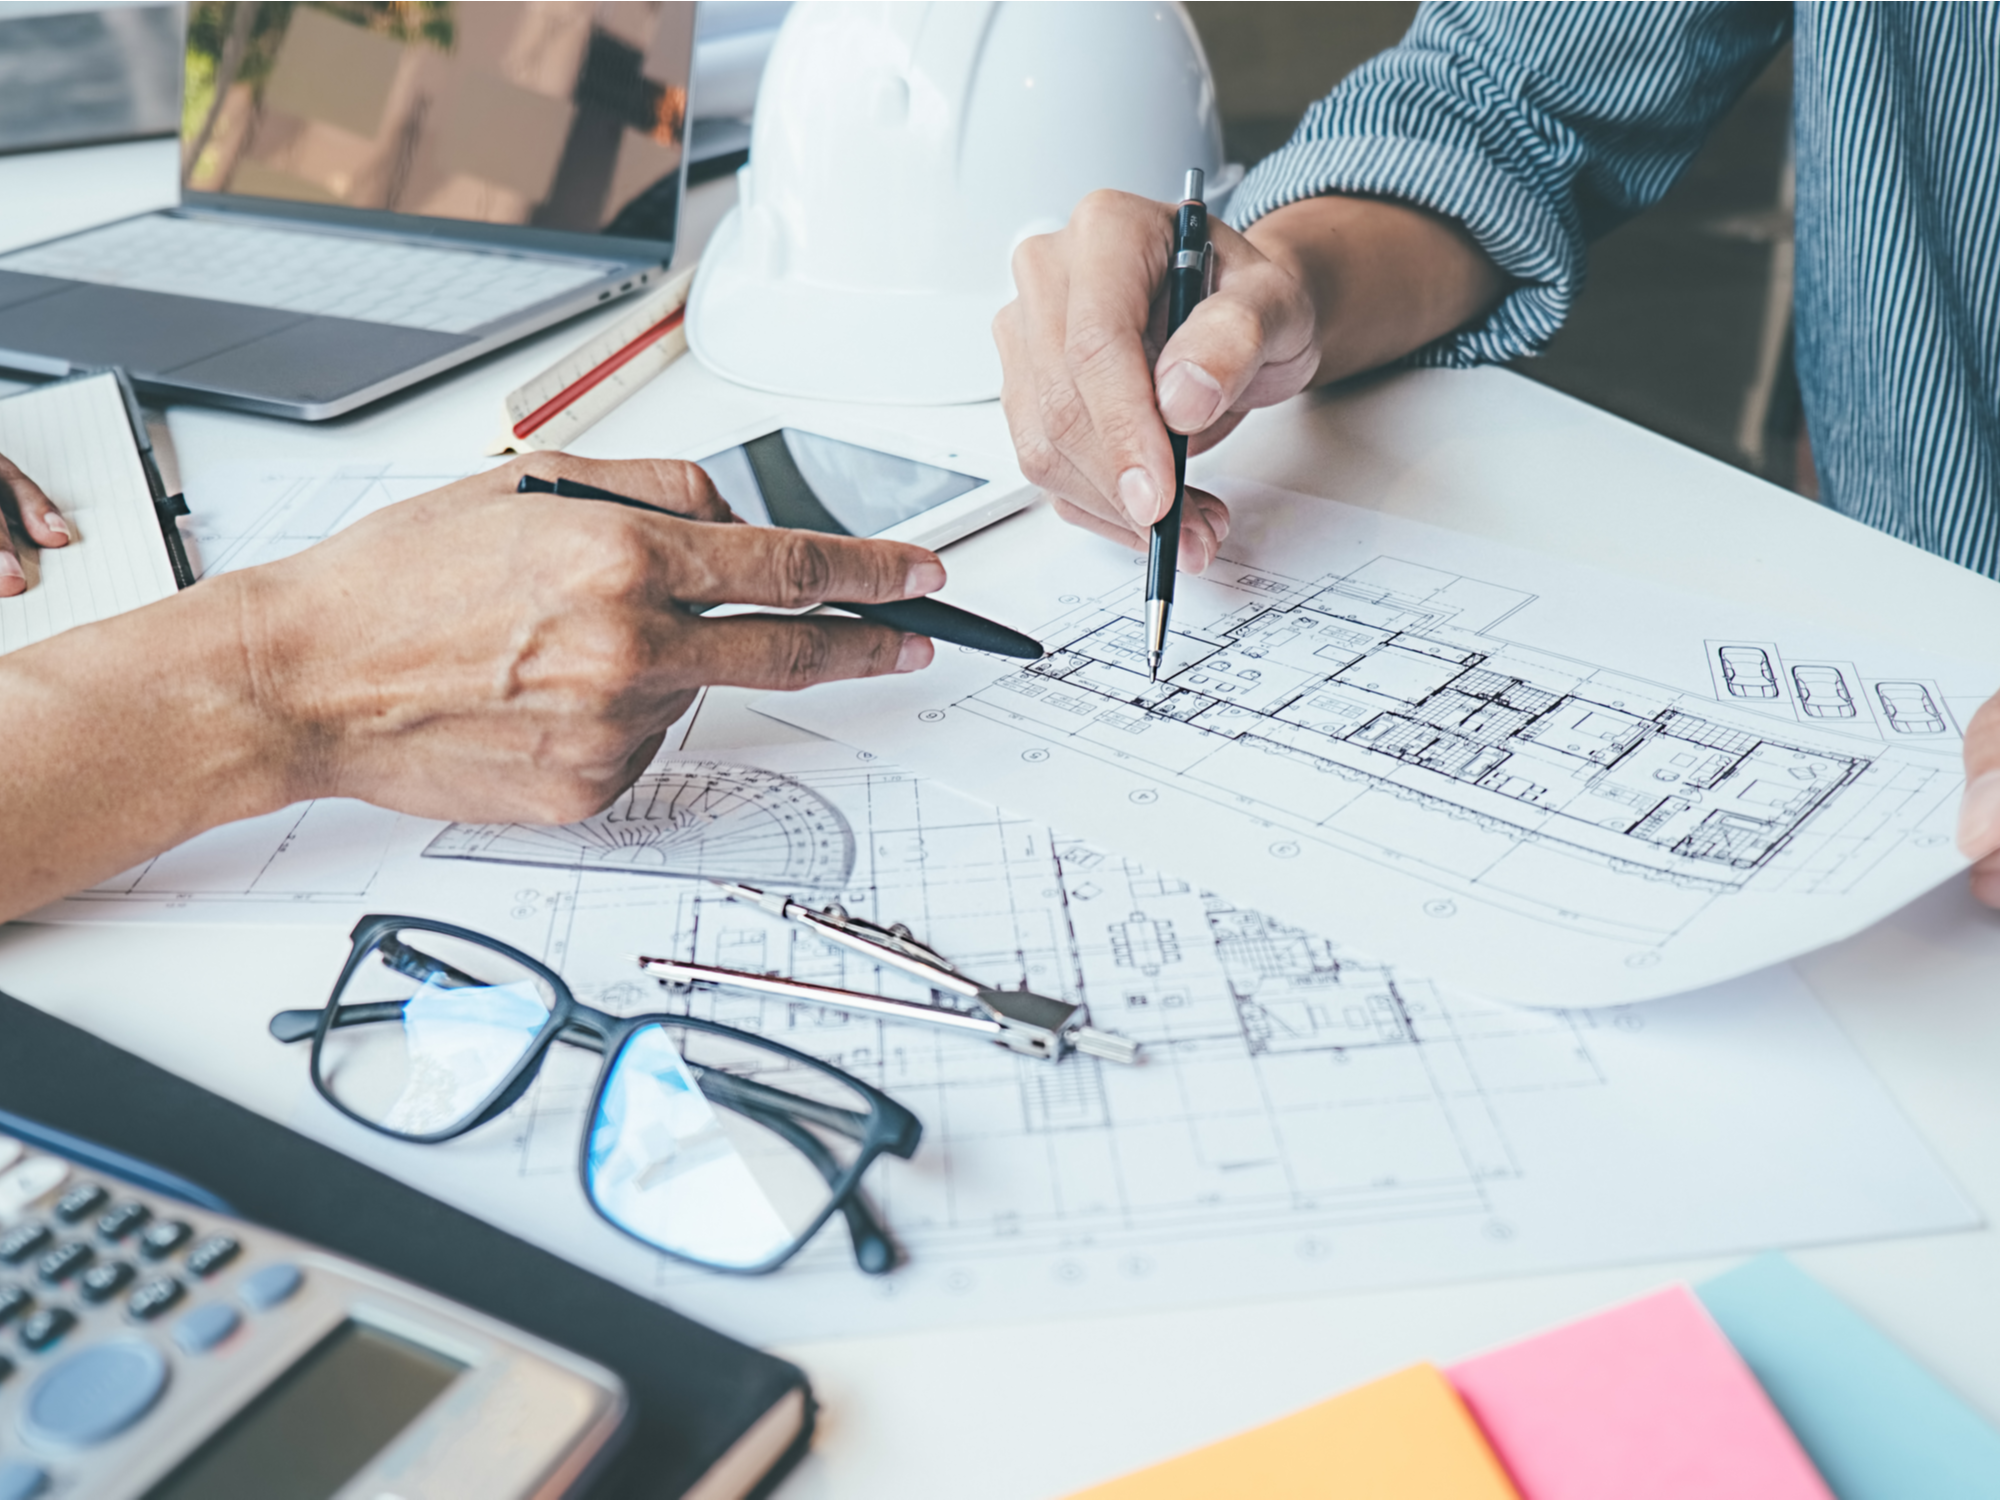 What's Involved in Forensic Architecture Consulting?